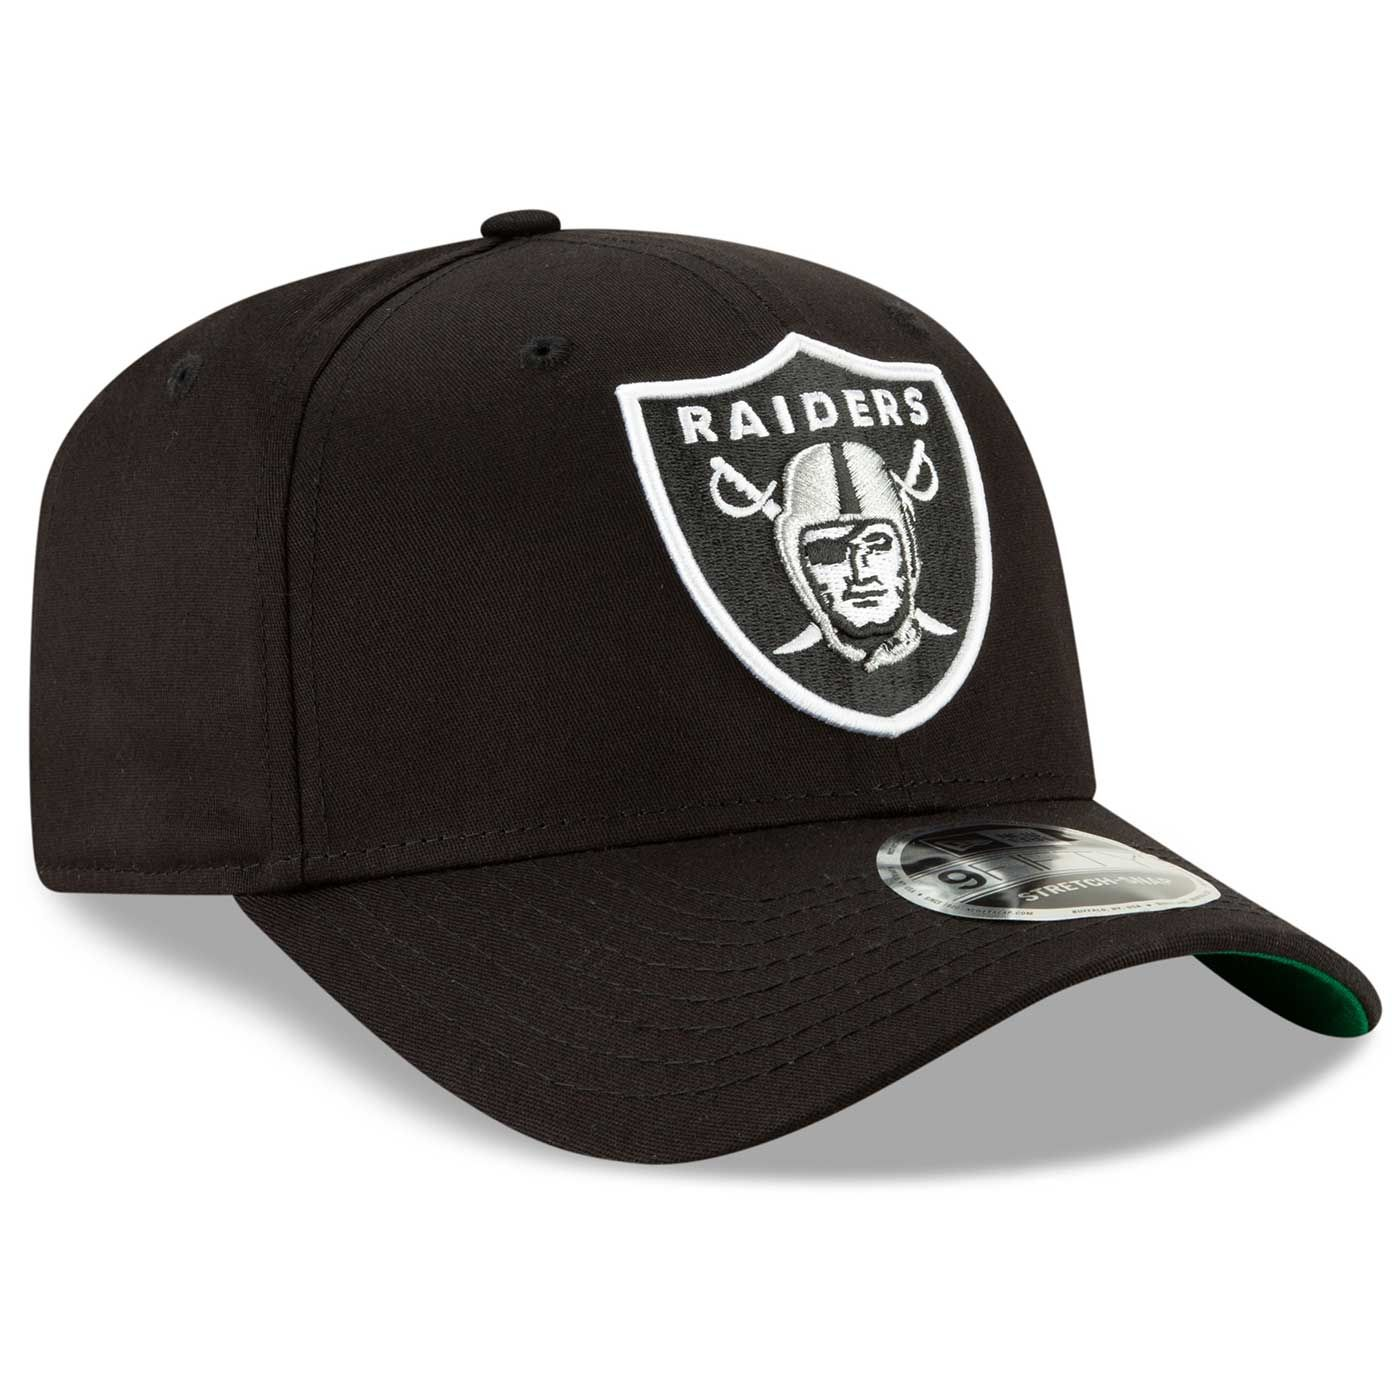 Era New By Curved 9fifty com Raiders - 426cae0a7 Pre Sabuzbd24 Cap bcffcfeddbdefccbb|WATCH Soccer Reside Online